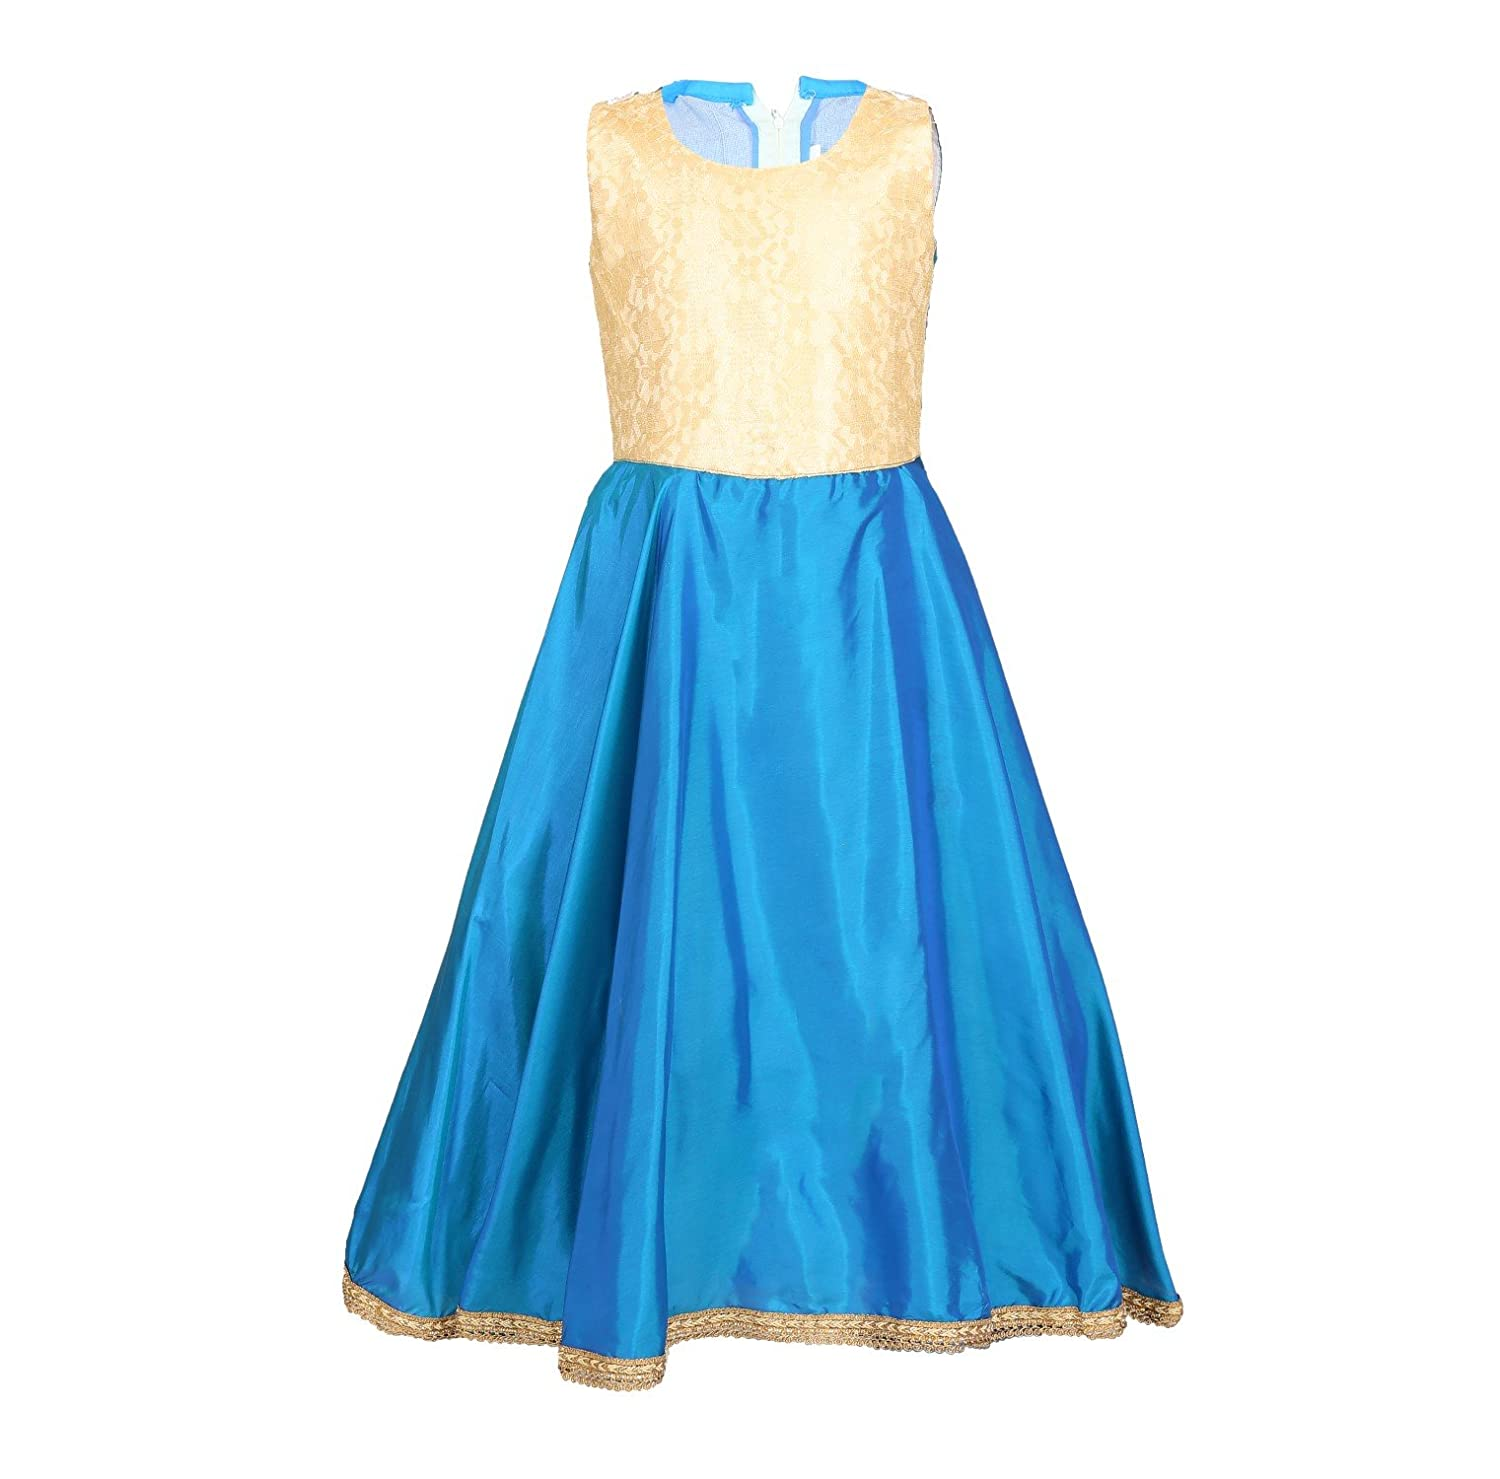 Arshia Fashions Girls Party Wear Gown with Poncho: Amazon.in ...